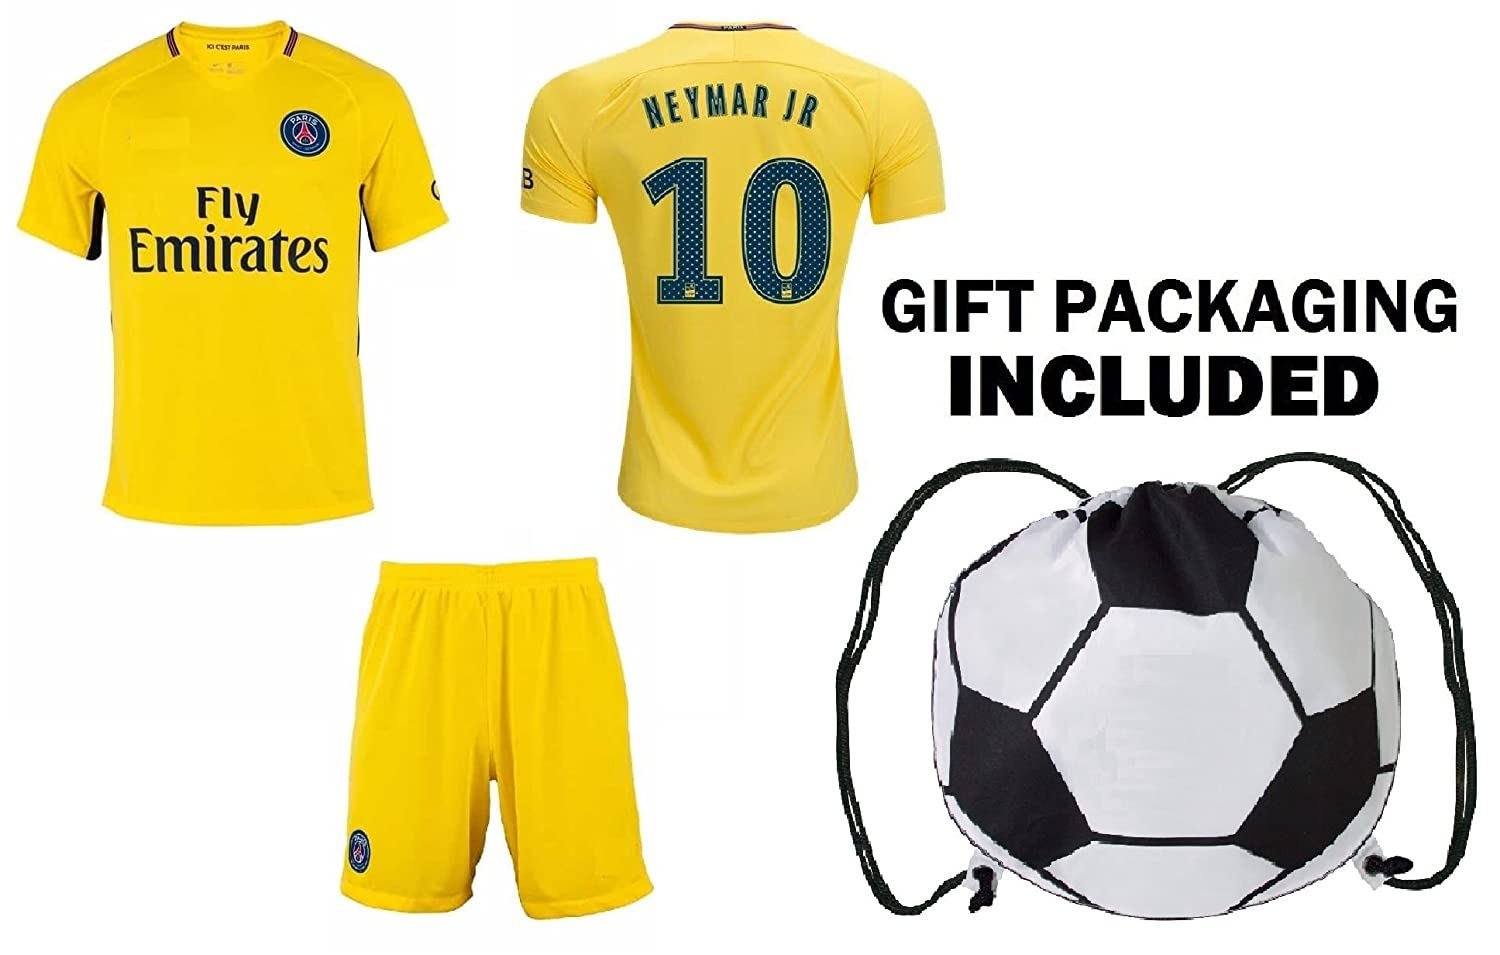 ✓AMAZING GIFT FOR SOCCER FANS  This Fan Kitbag Neymar Jr  10 Soccer Premium  Gift Kitbag is engineered to be the BEST GIFT for all soccer fans! 9bb521bf8